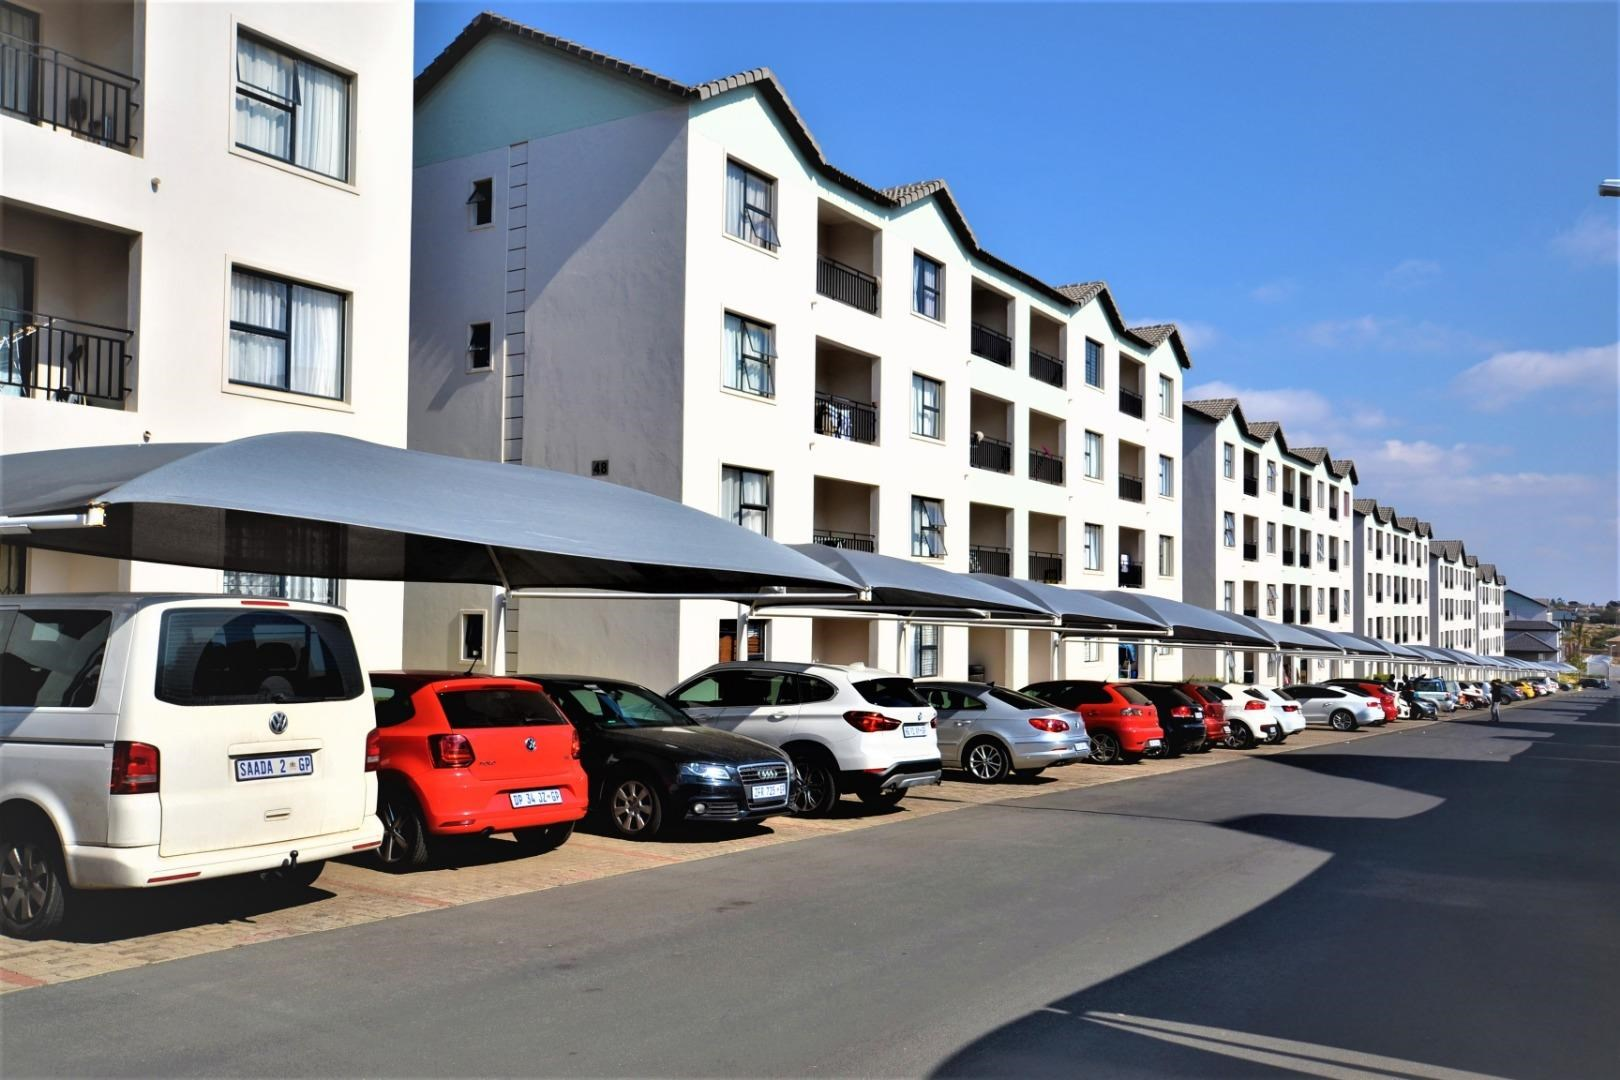 2 Bedroom Apartment for Sale in Carlswald